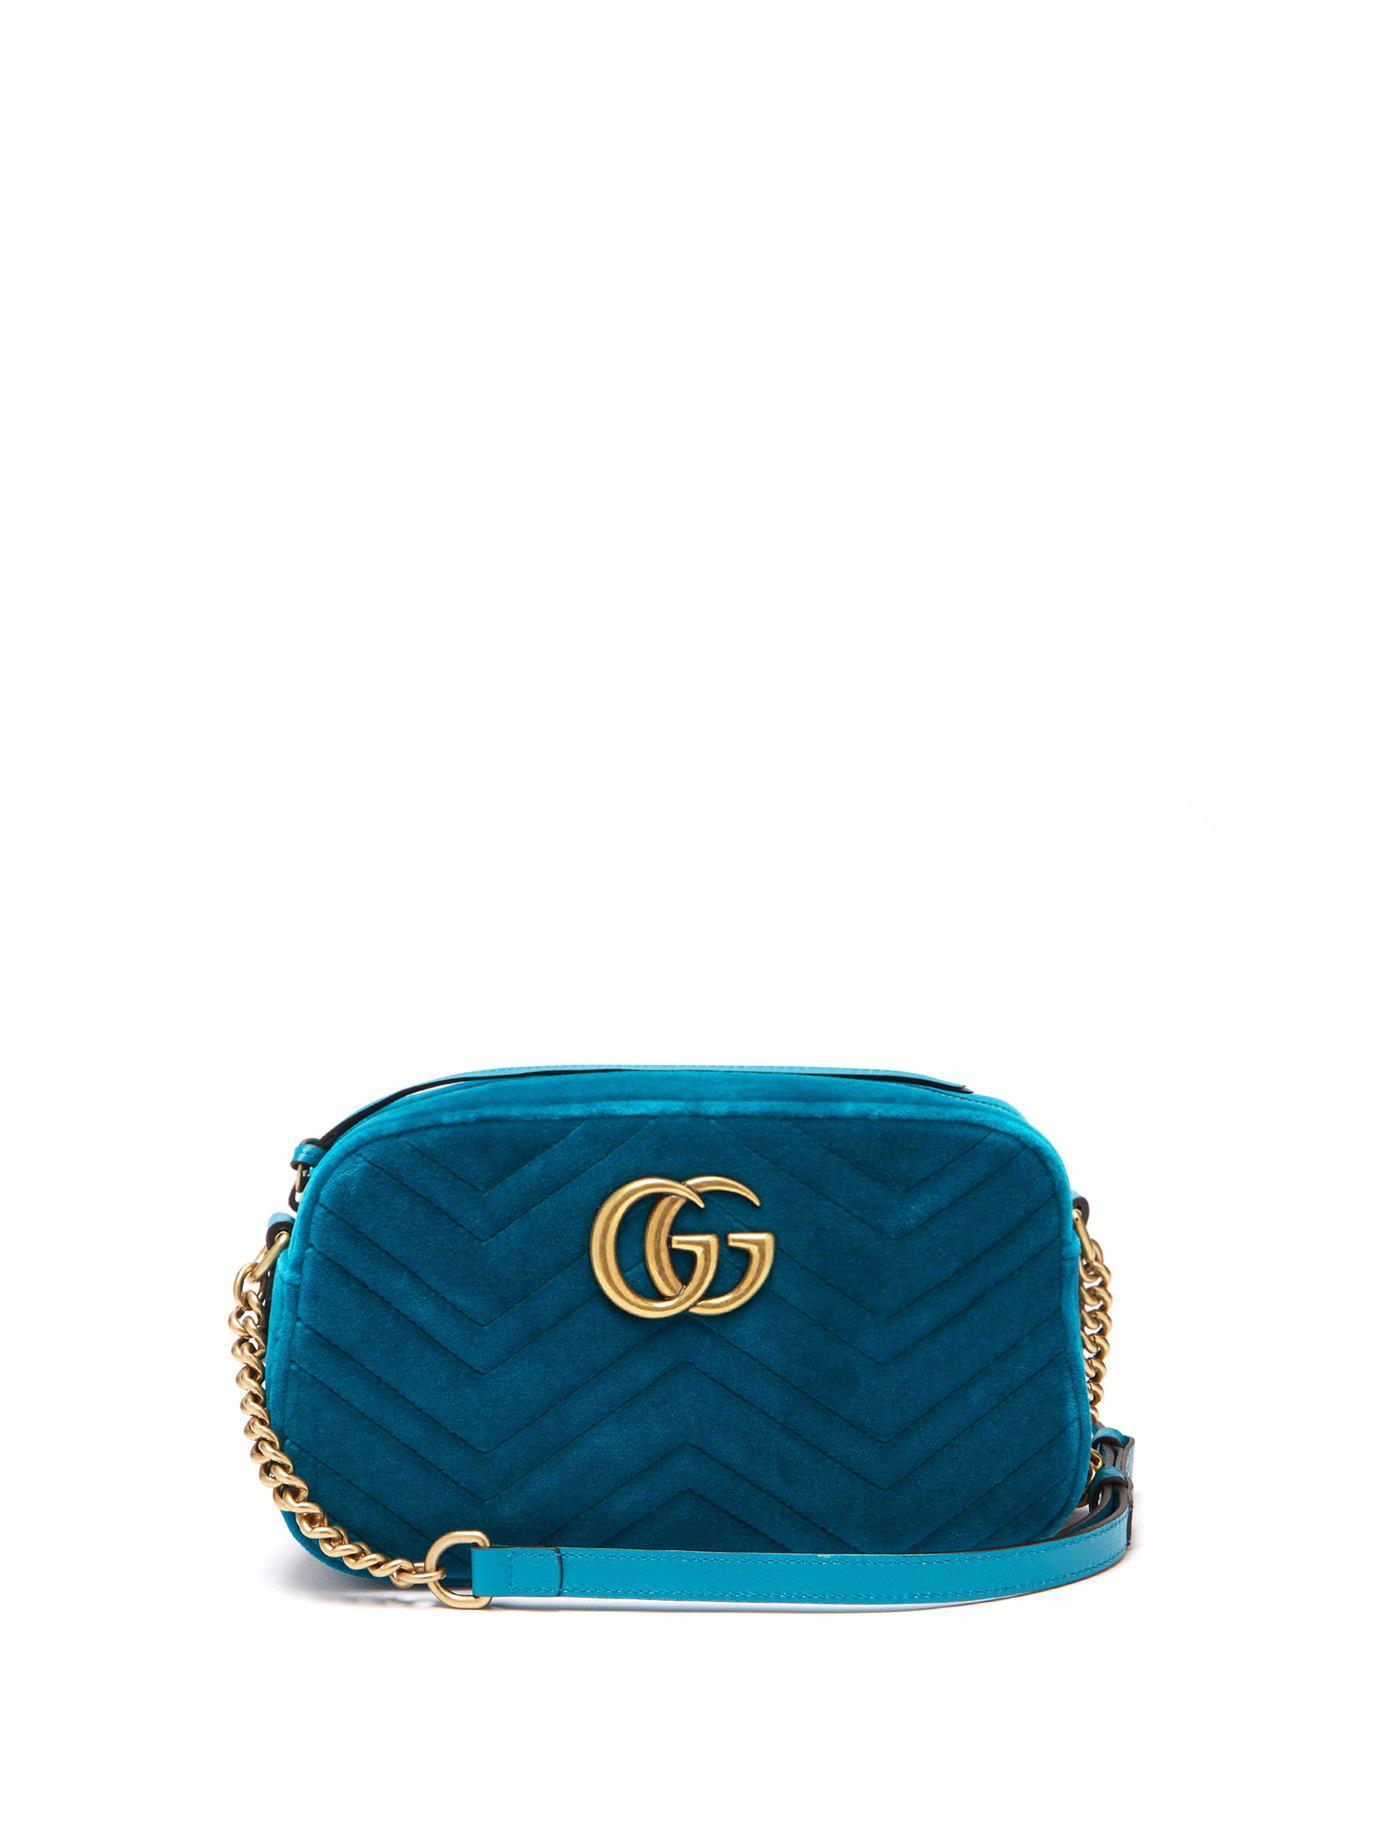 c5b770855600 Lyst - Gucci Gg Marmont Quilted Velvet Cross Body Bag in Green